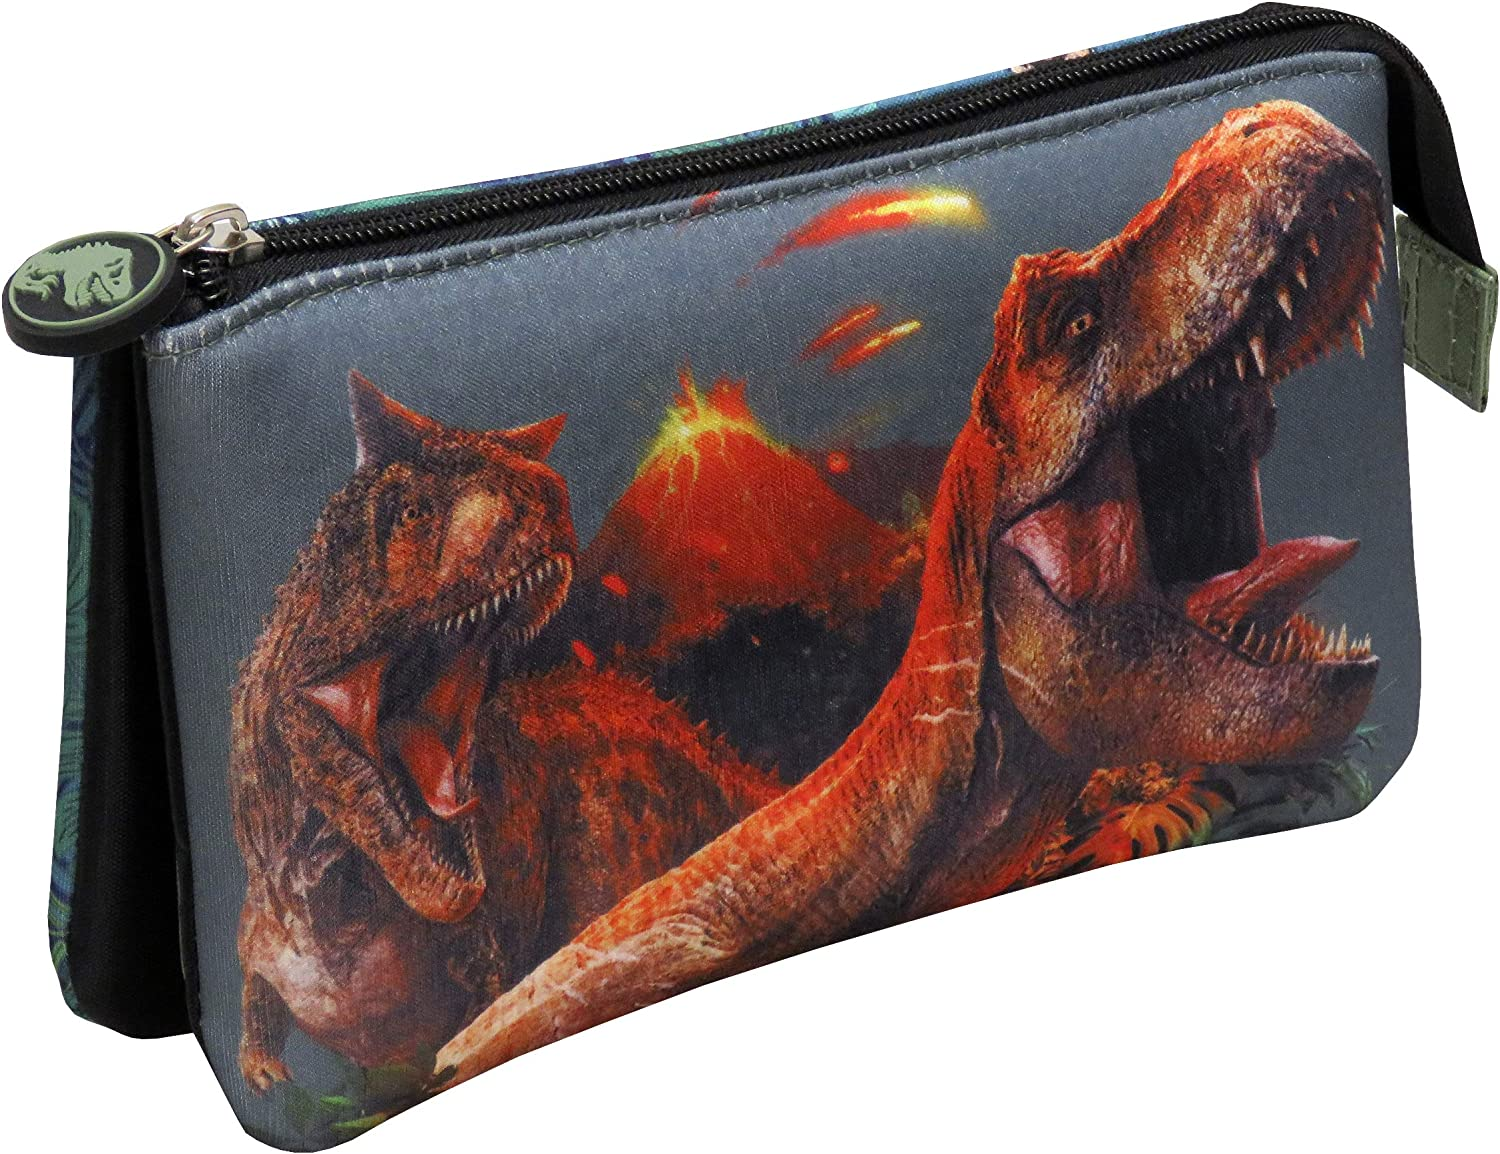 CYP BRANDS Jurassic World PT-33-JW Portatodo Triple con 5 Compartimentos, Rojo: Amazon.es: Equipaje